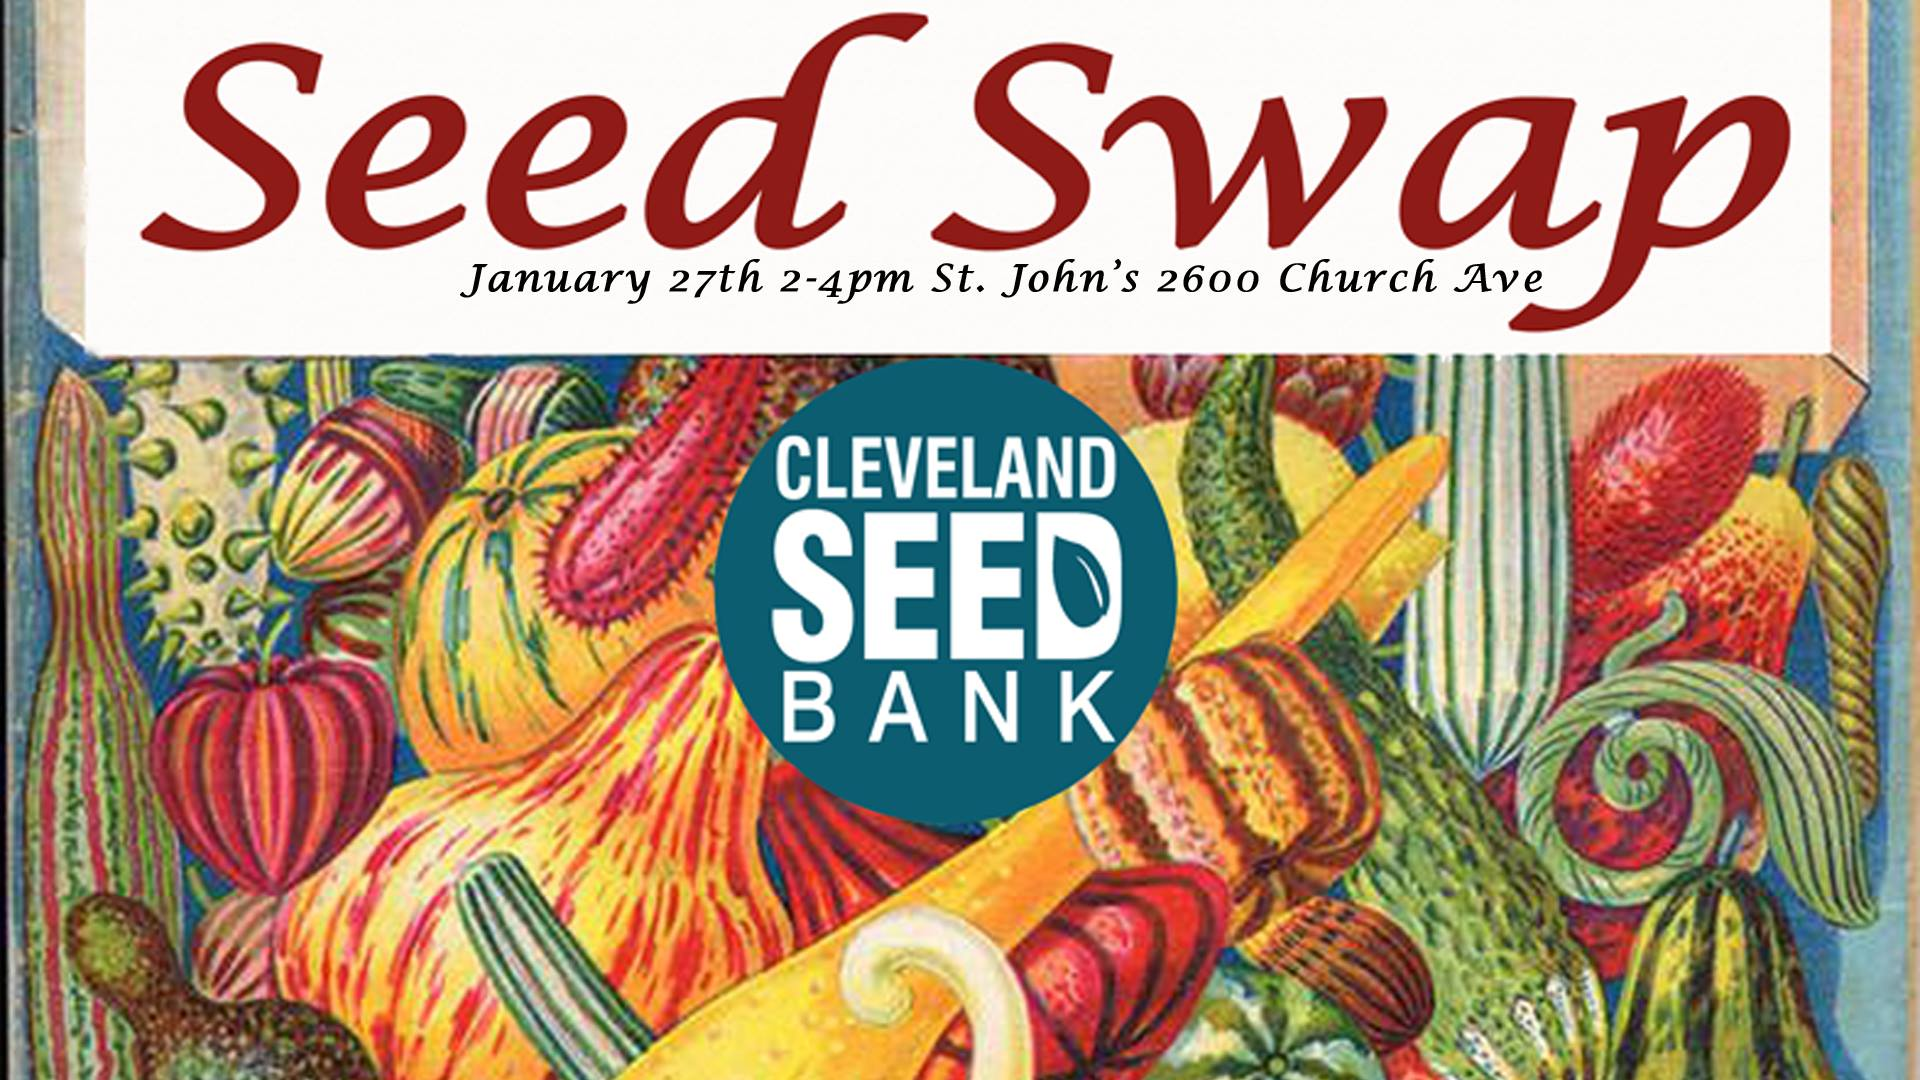 The Seed Swap is free and open to the public.No seeds are required to join in the festivities.Here's the link to their Facebook page with all the details: https://www.facebook.com/events/132674880685568/ .